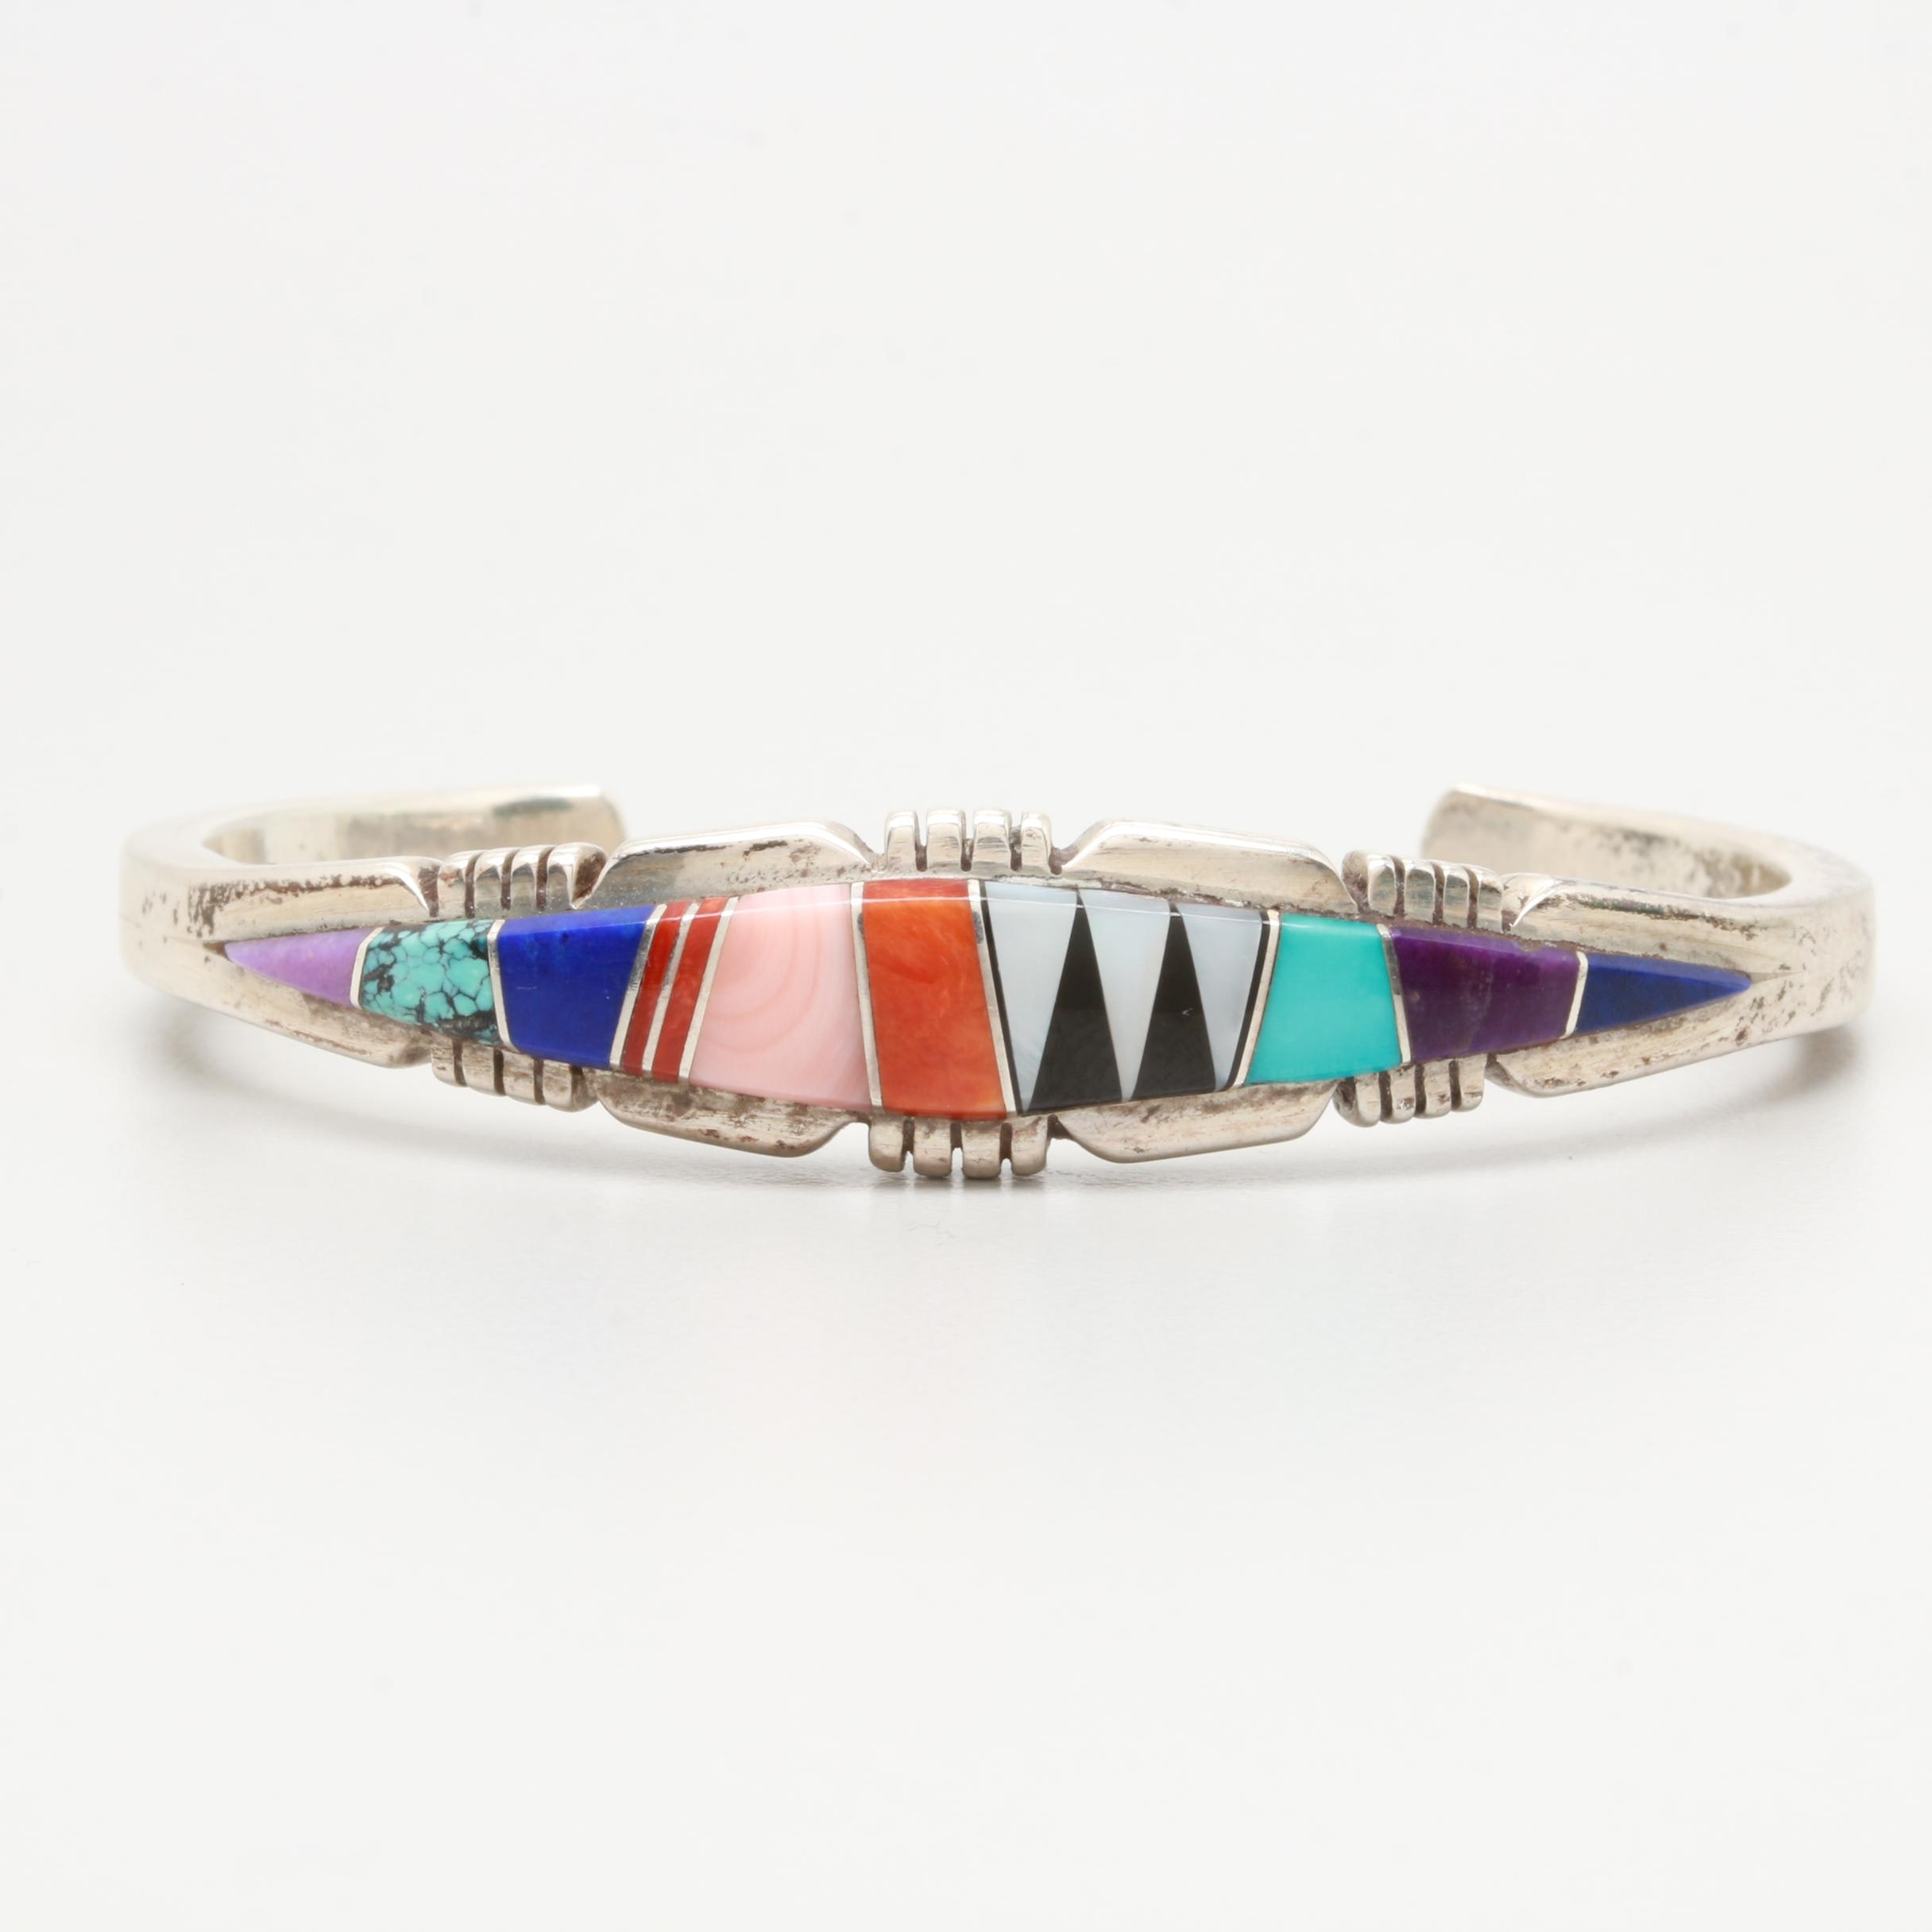 Linette Laiwakete Zuni Sterling Silver Spiny Oyster and Gemstone Cuff Bracelet